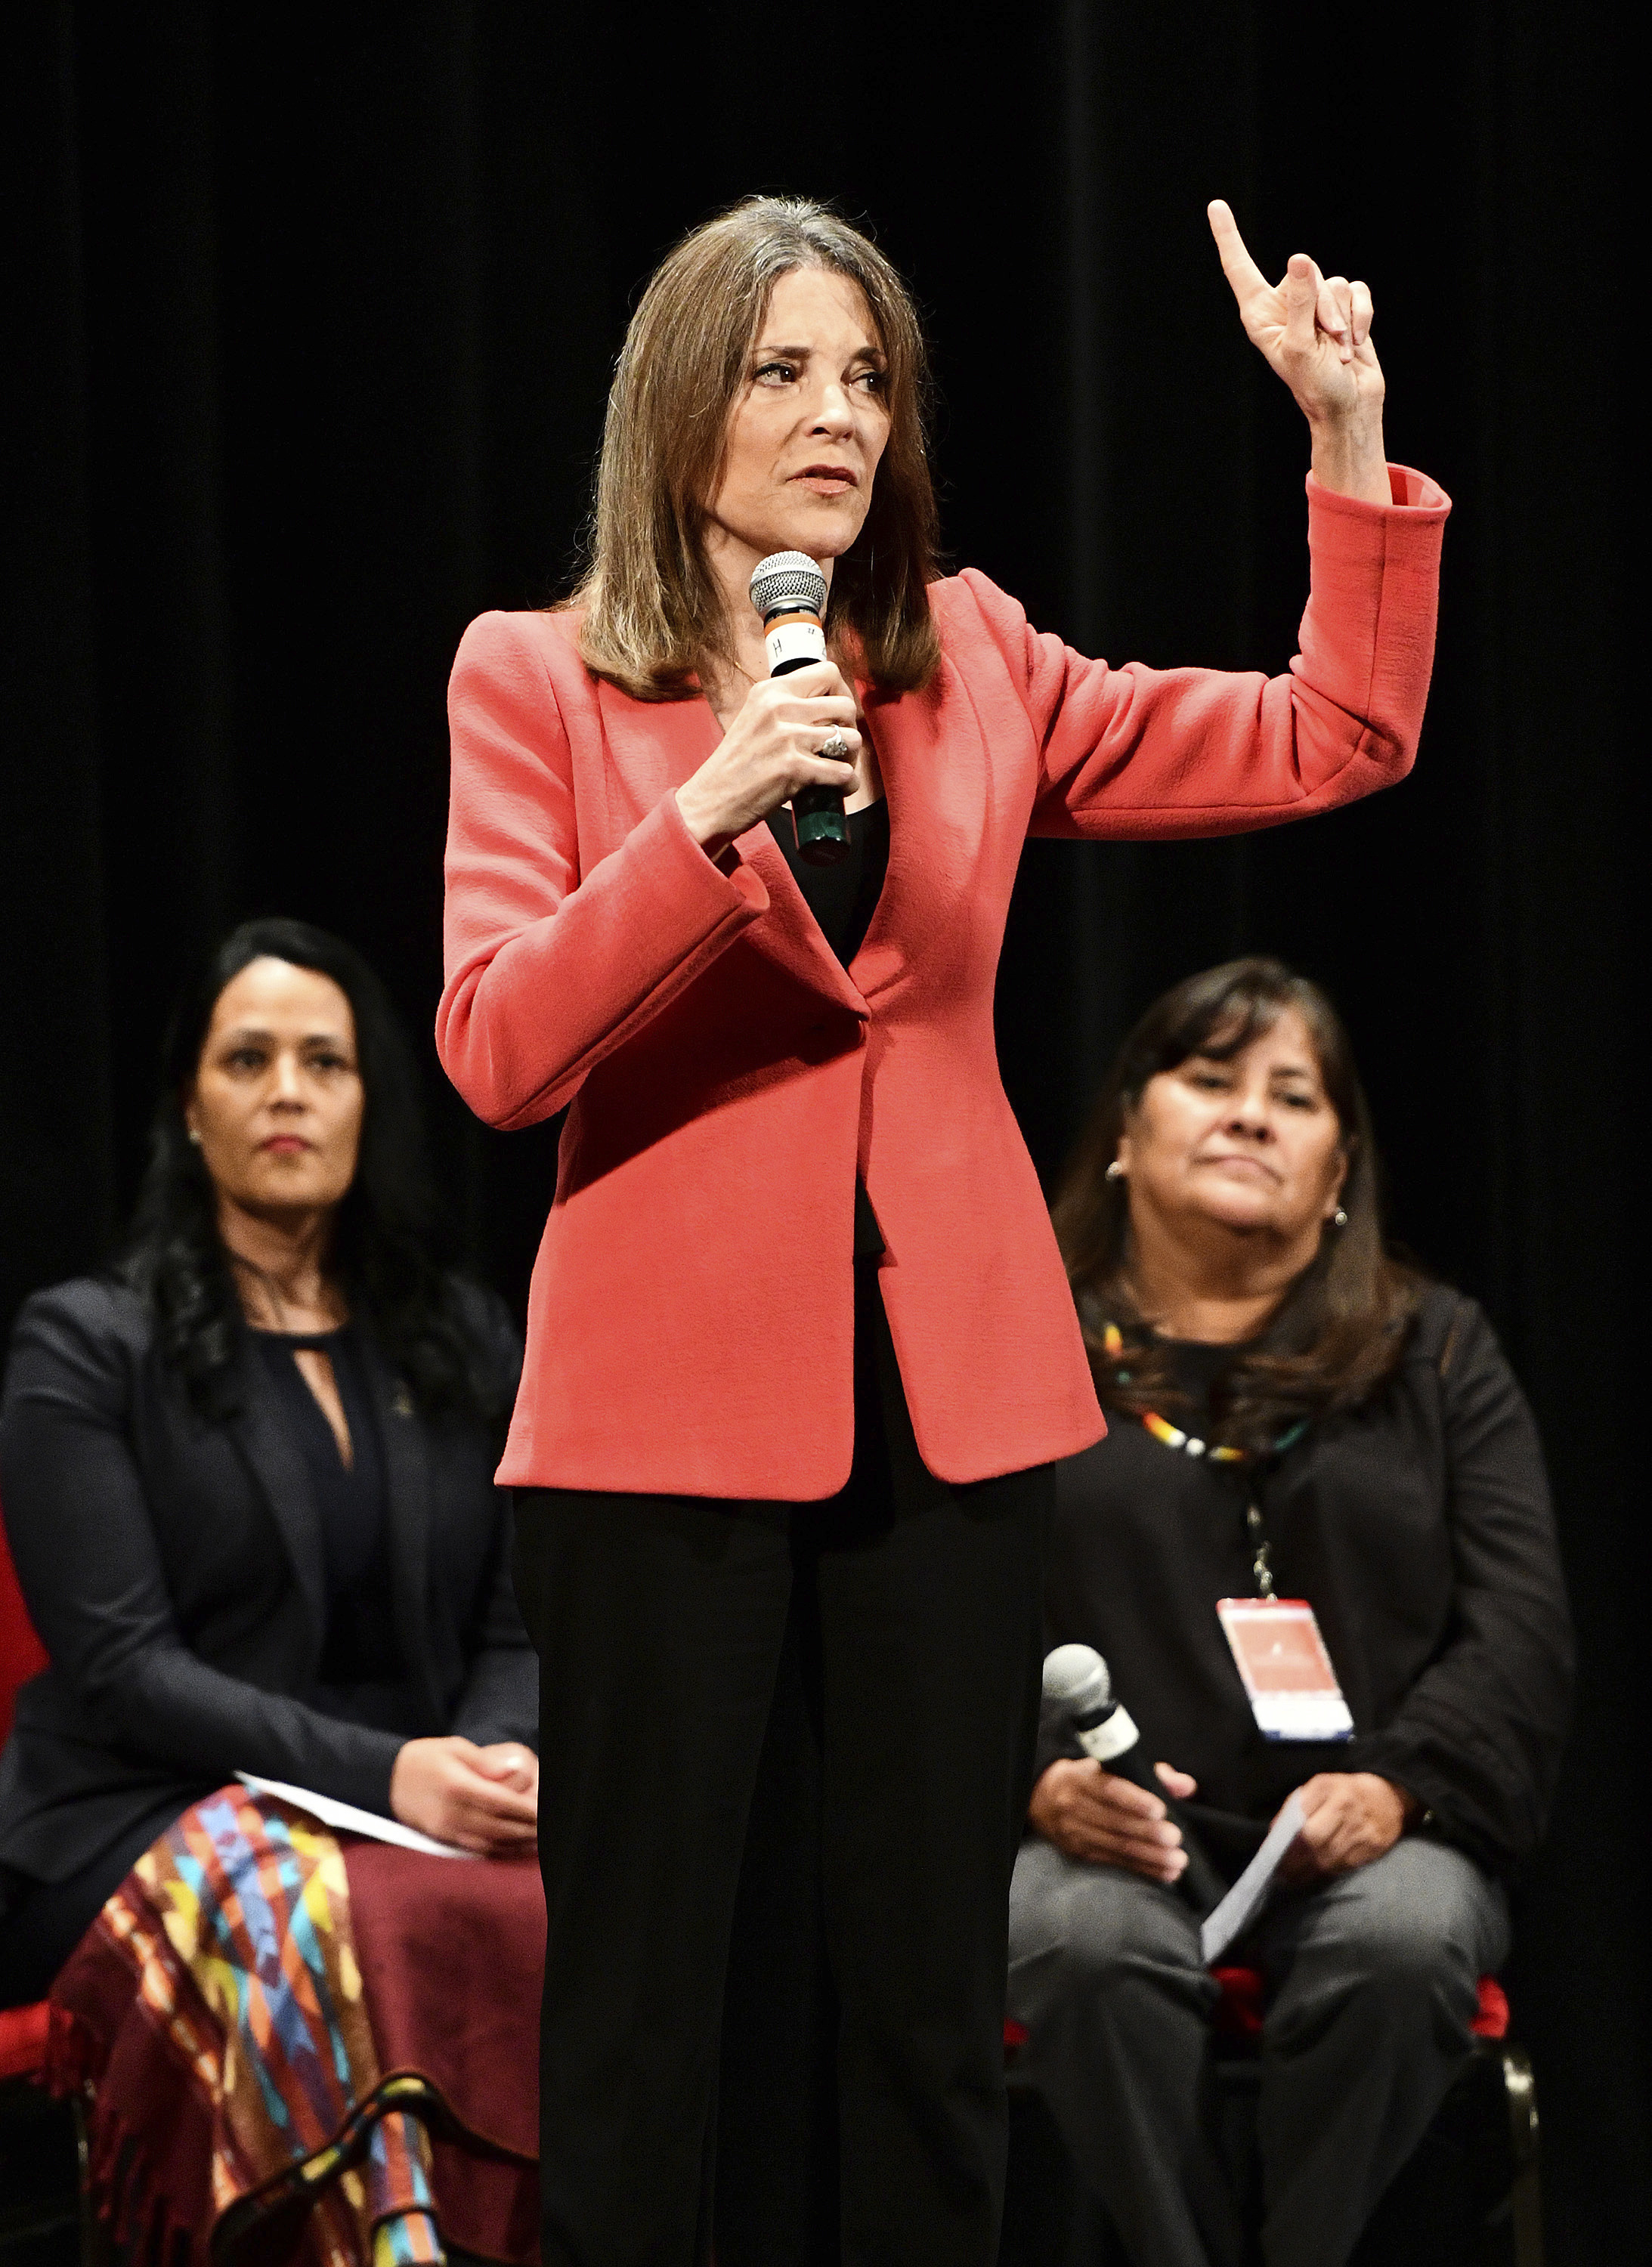 Marianne Williamson proposes new Department of Peace: 'We can no longer rely on force'